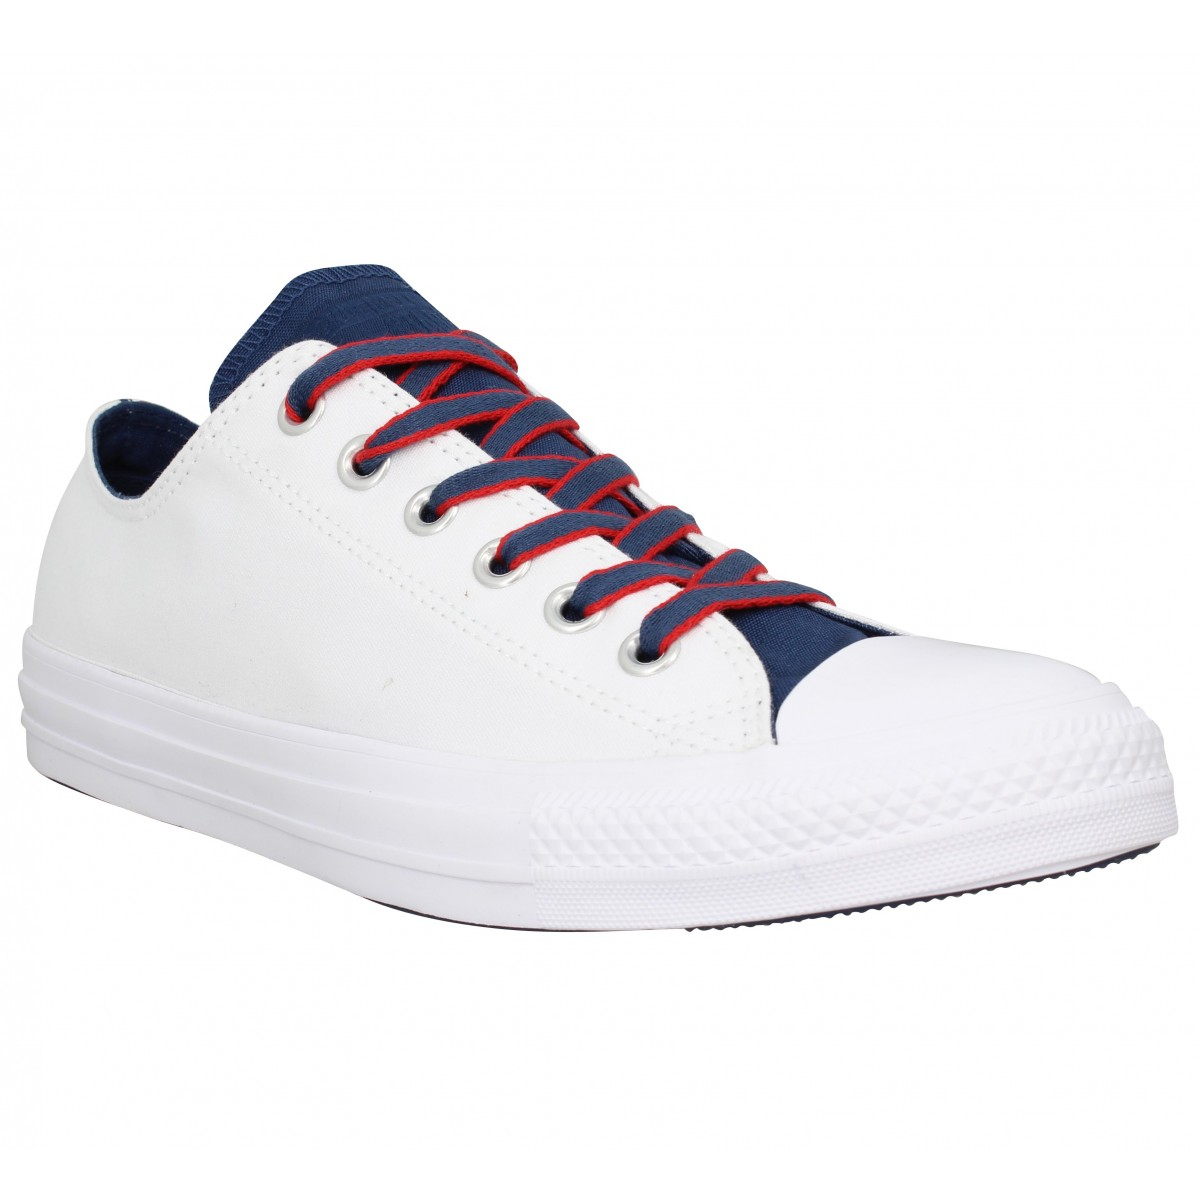 Baskets CONVERSE Chuck Taylor All Star toile Homme Blanc Bleu